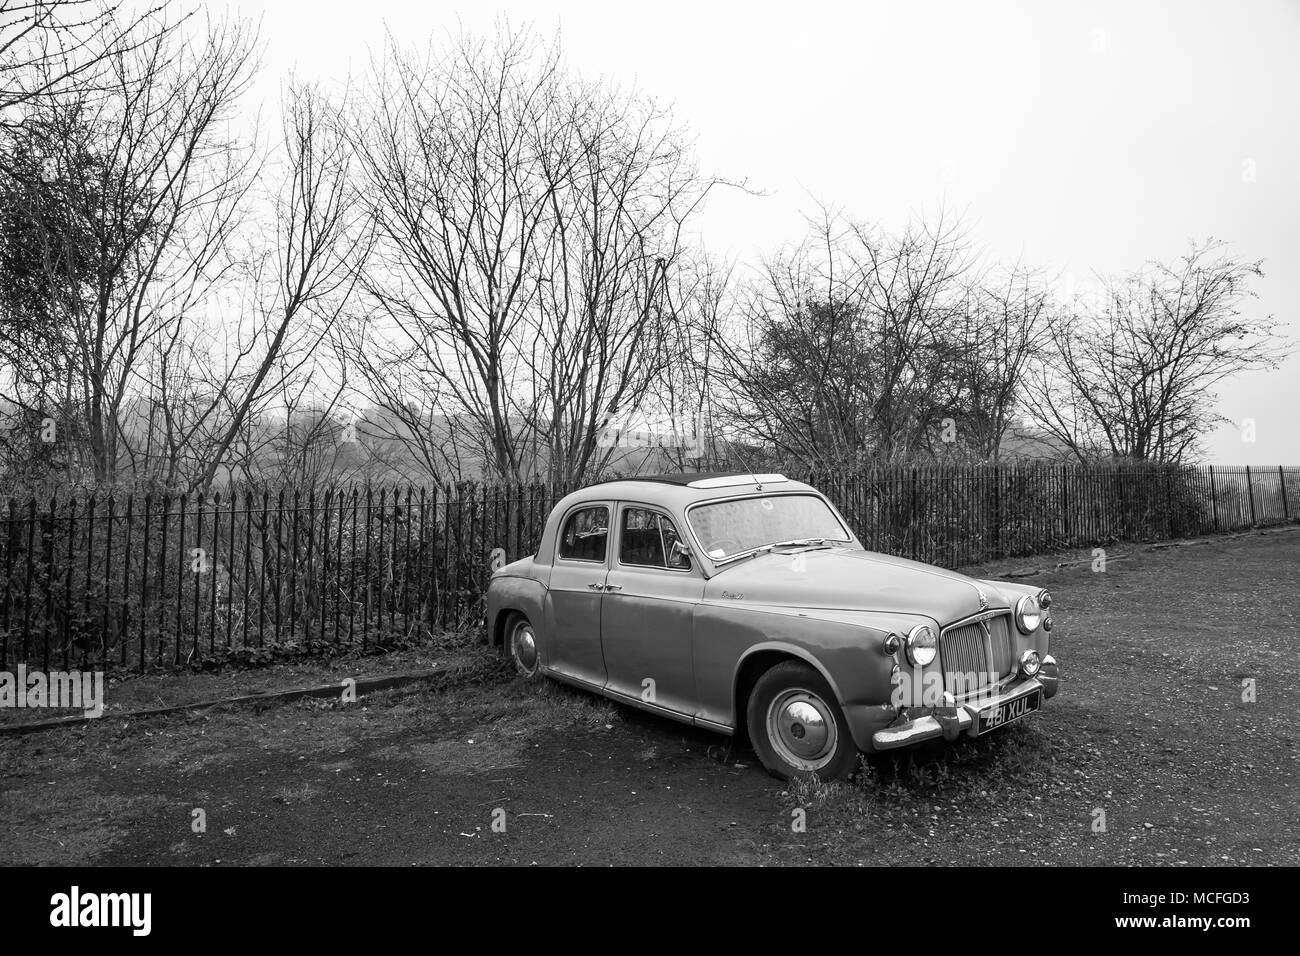 Black and white capture of a Rover P90 that has seen better times & is now an abandoned relic in retirement, parked alone in a deserted car park. - Stock Image